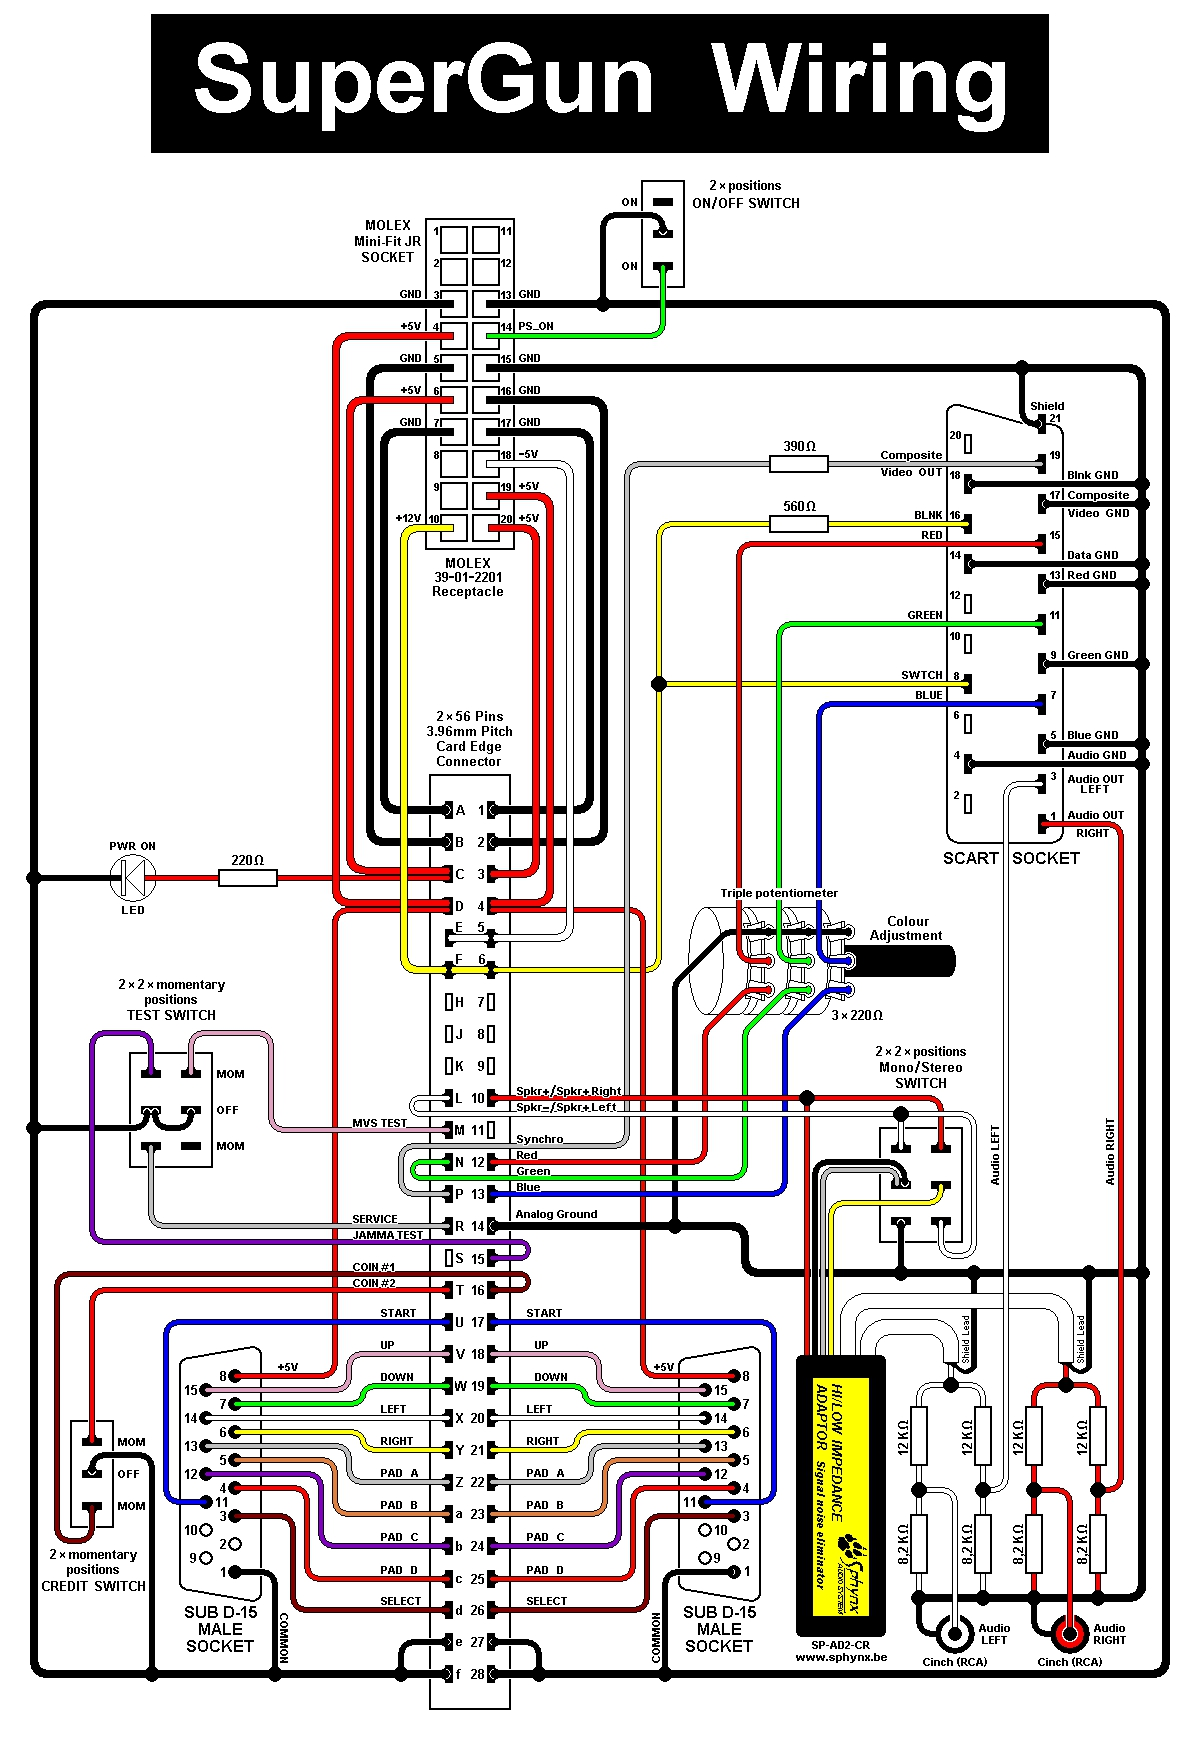 Arcade Power Supply Wiring Diagram : Jamma supergun bitplus